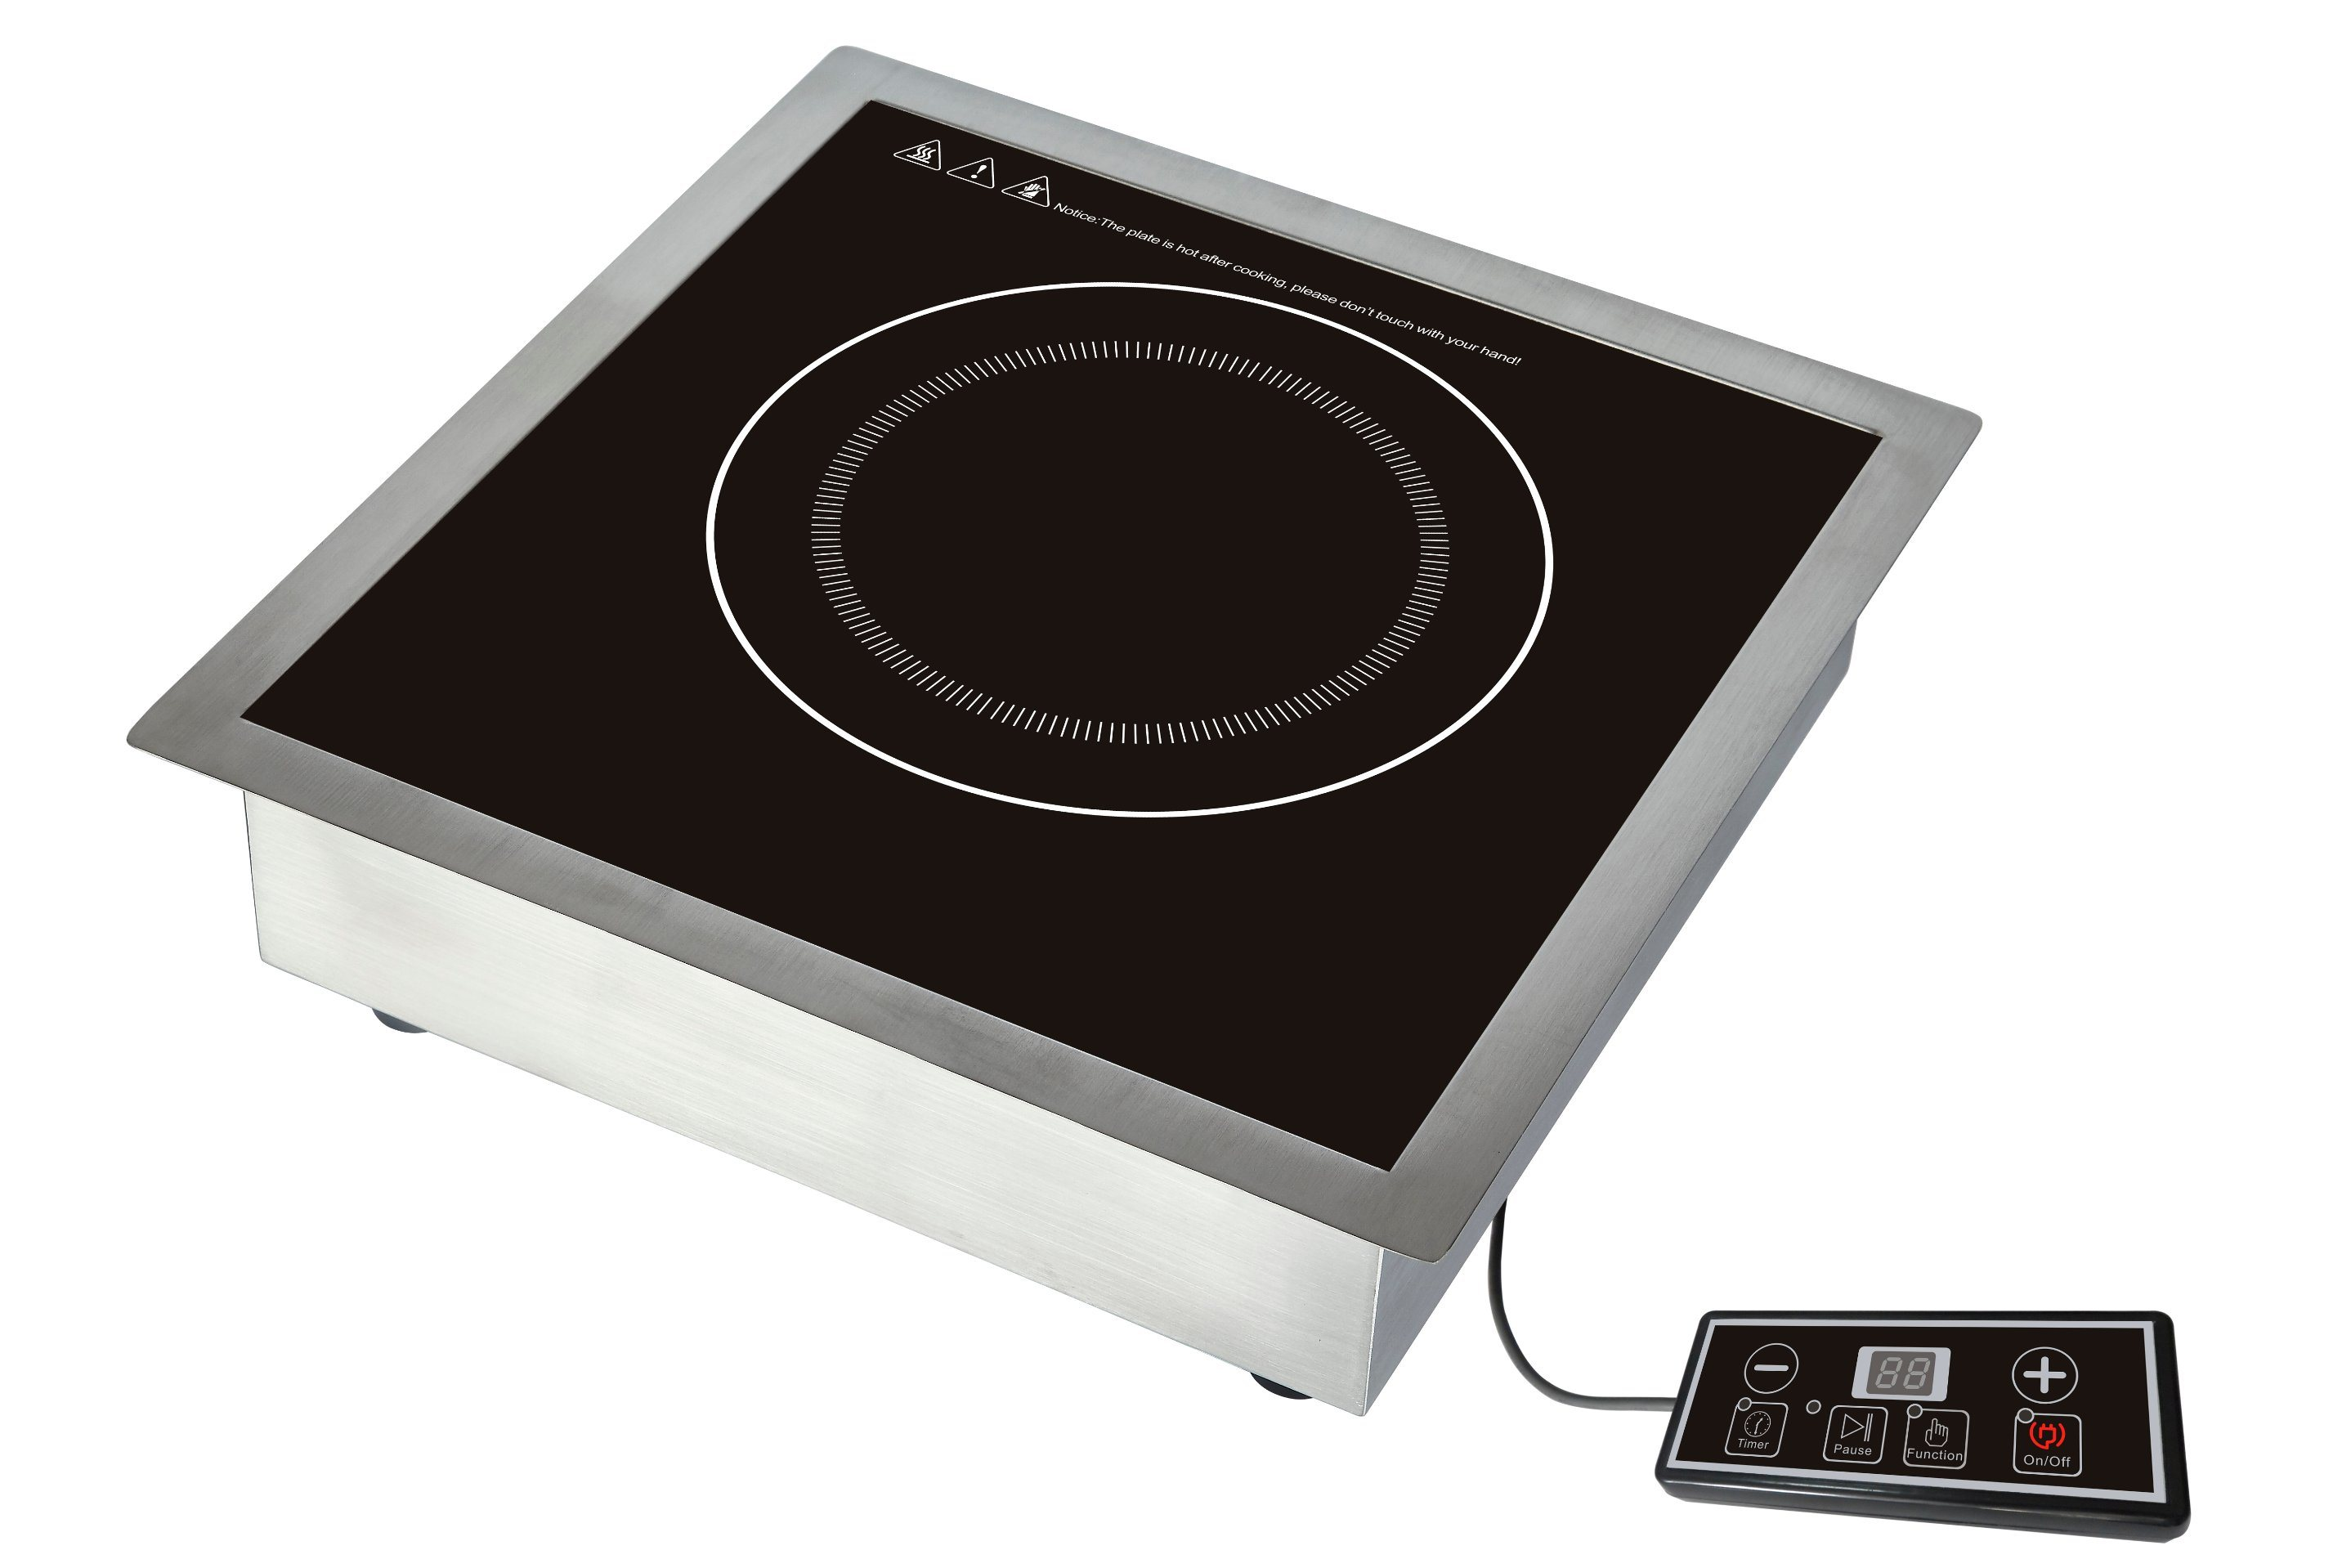 ETL/cETL Approved 240V/60Hz High Power 3500W Commercial Induction Cooktop Model SM-C01D